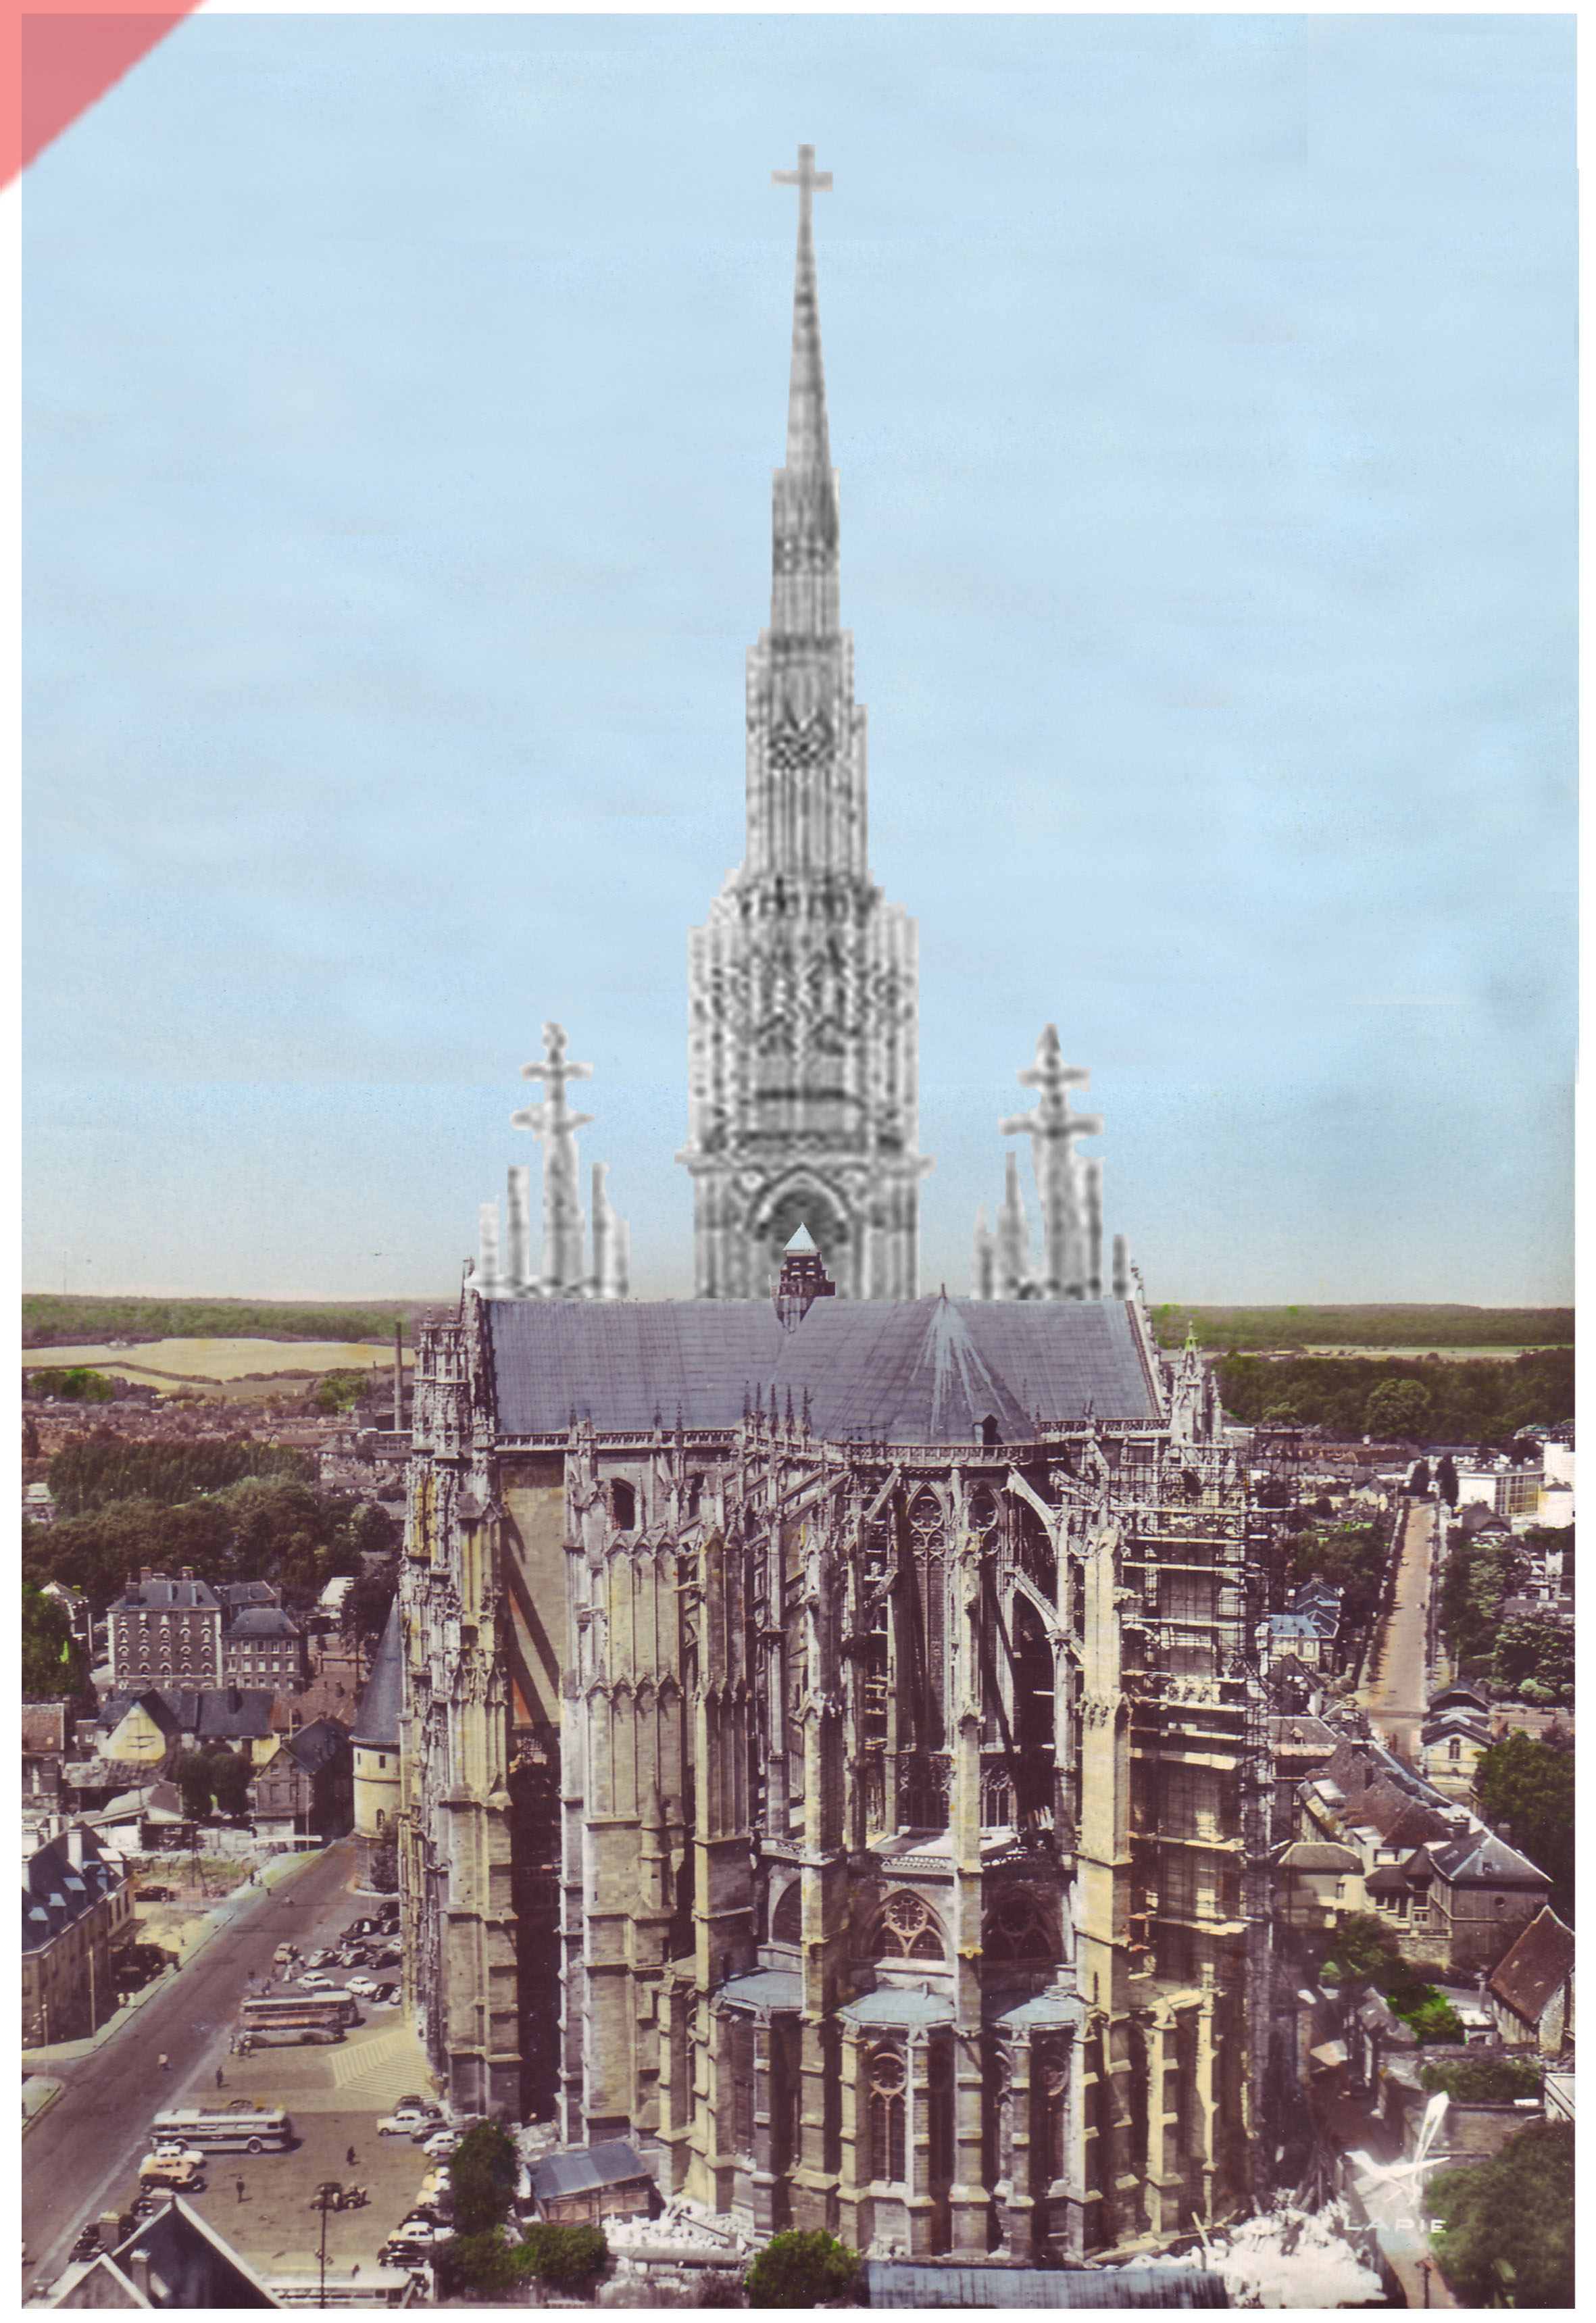 Cathédrale-Beauvais-vue-aerienne-façade-ouest-façade-prévue-tour-1573-église-planifiée-Cathedrale-Beauvais-aerial-view-east-façade-geplante-façade-tower-1573-planned-church-kathedrale